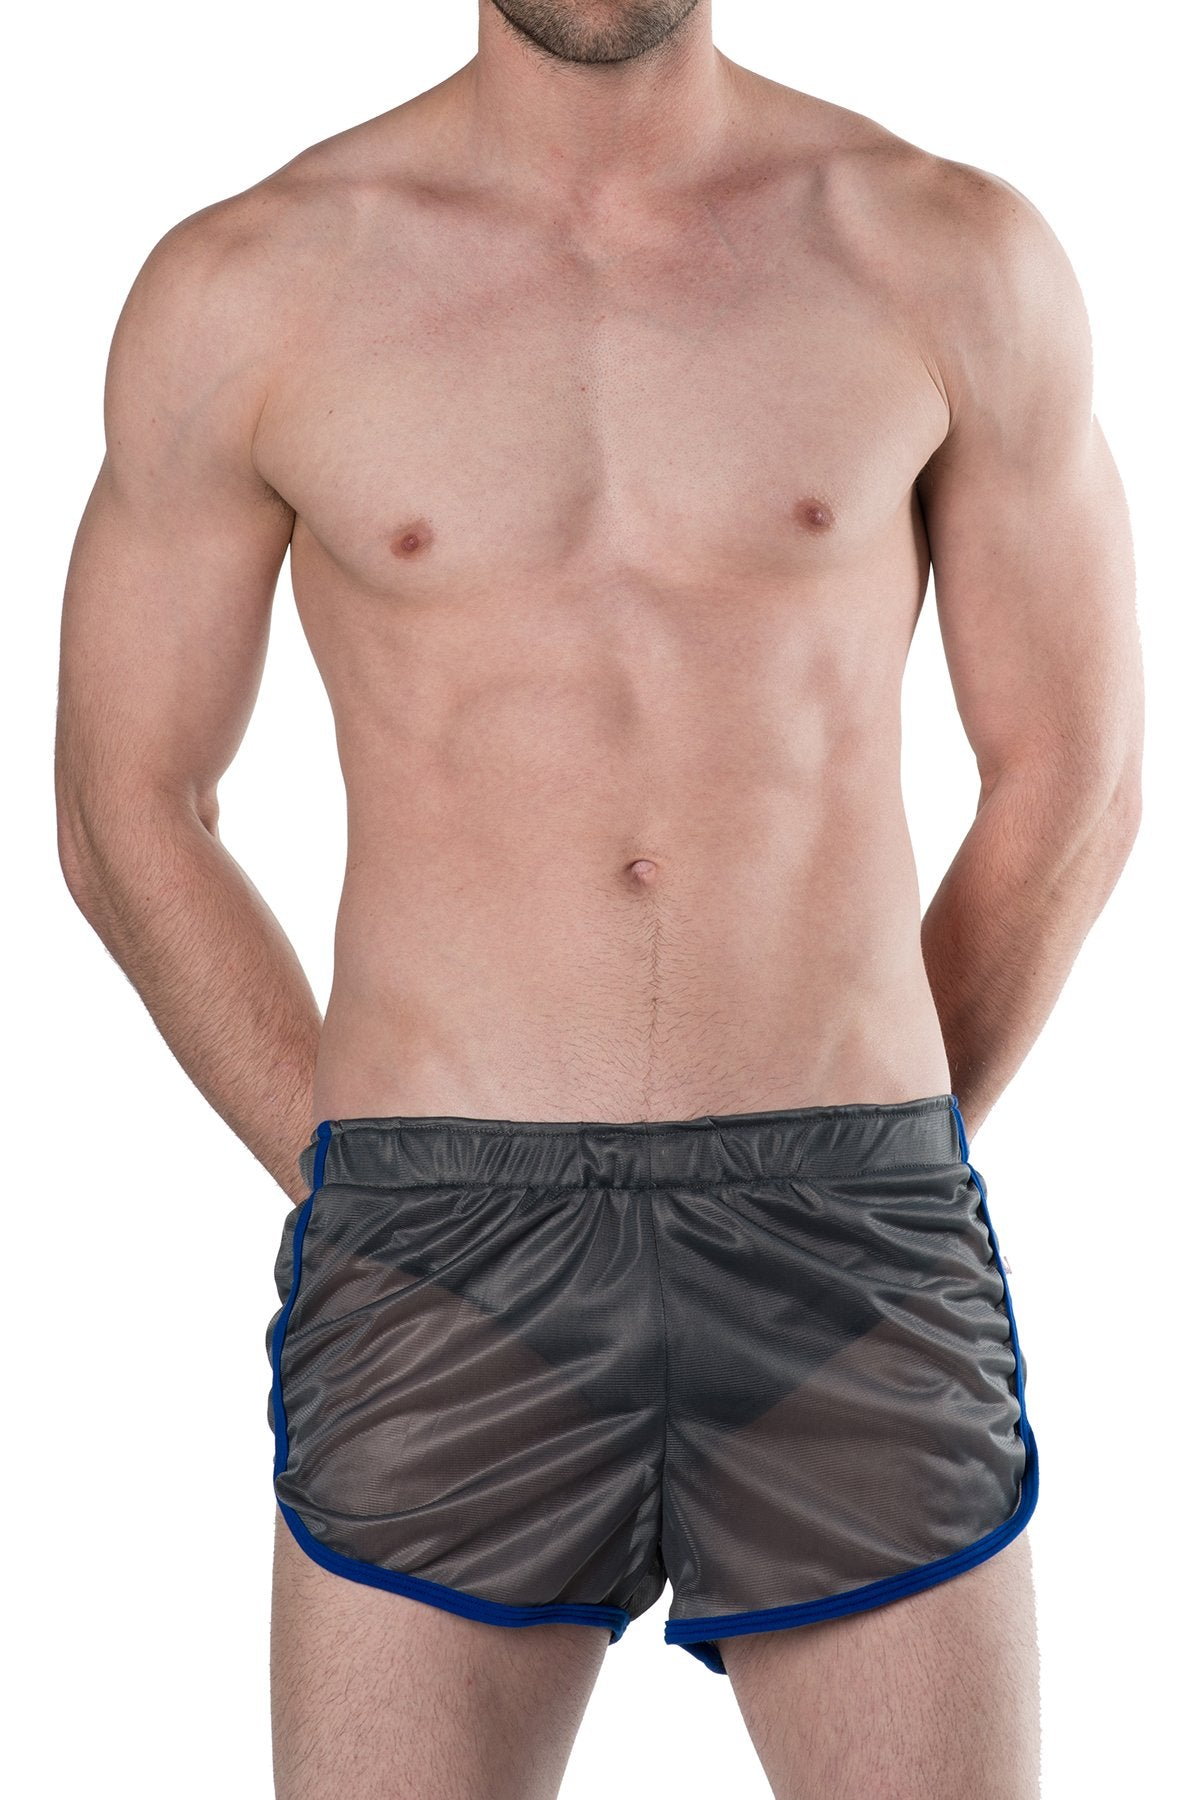 American Jock Grey/Royal Featherweight Sheer Mesh Track Short